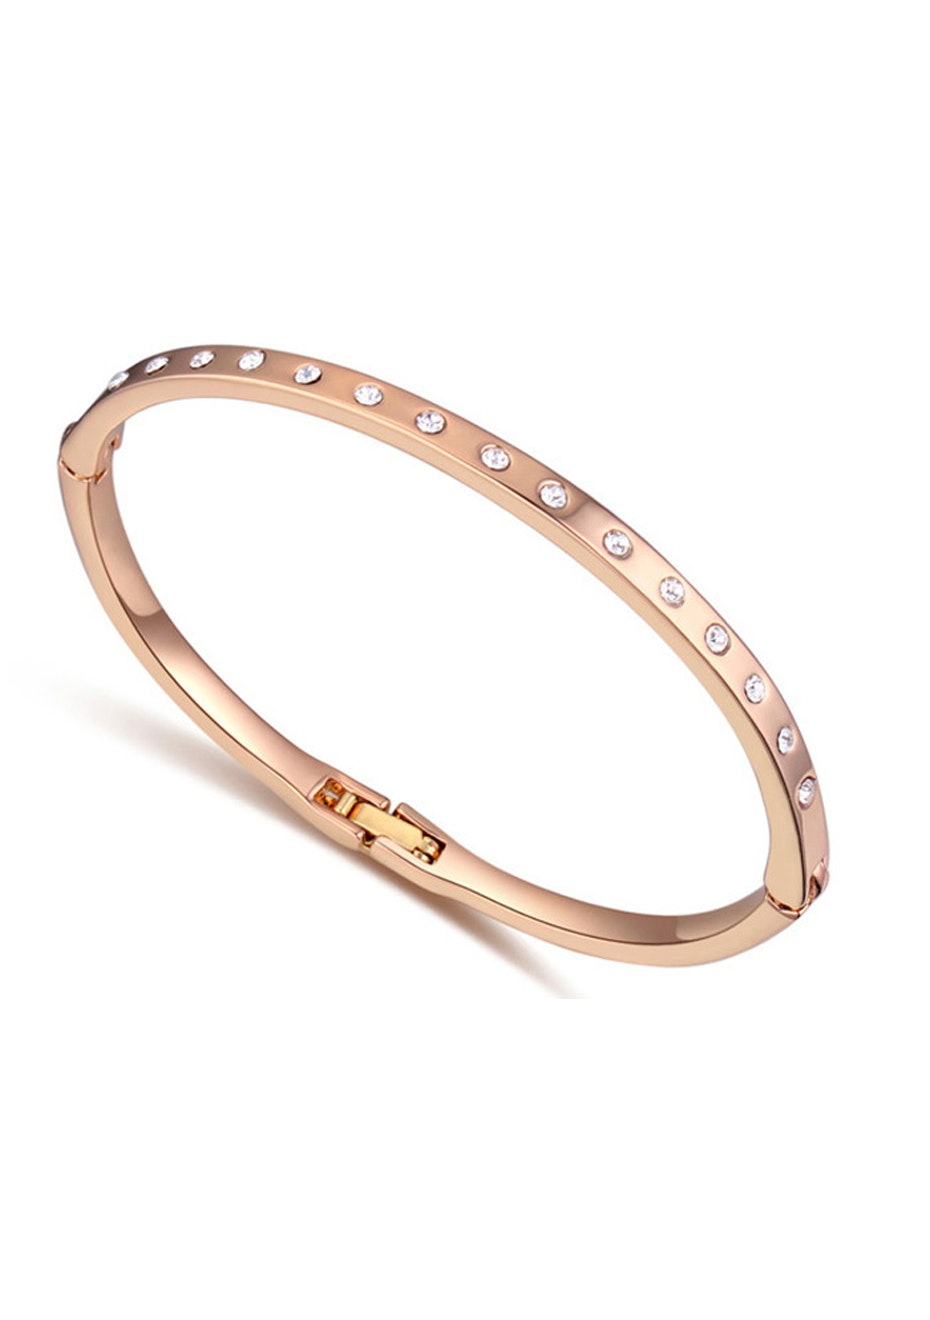 Classic Bangle Embellished with Crystals from Swarovski -G